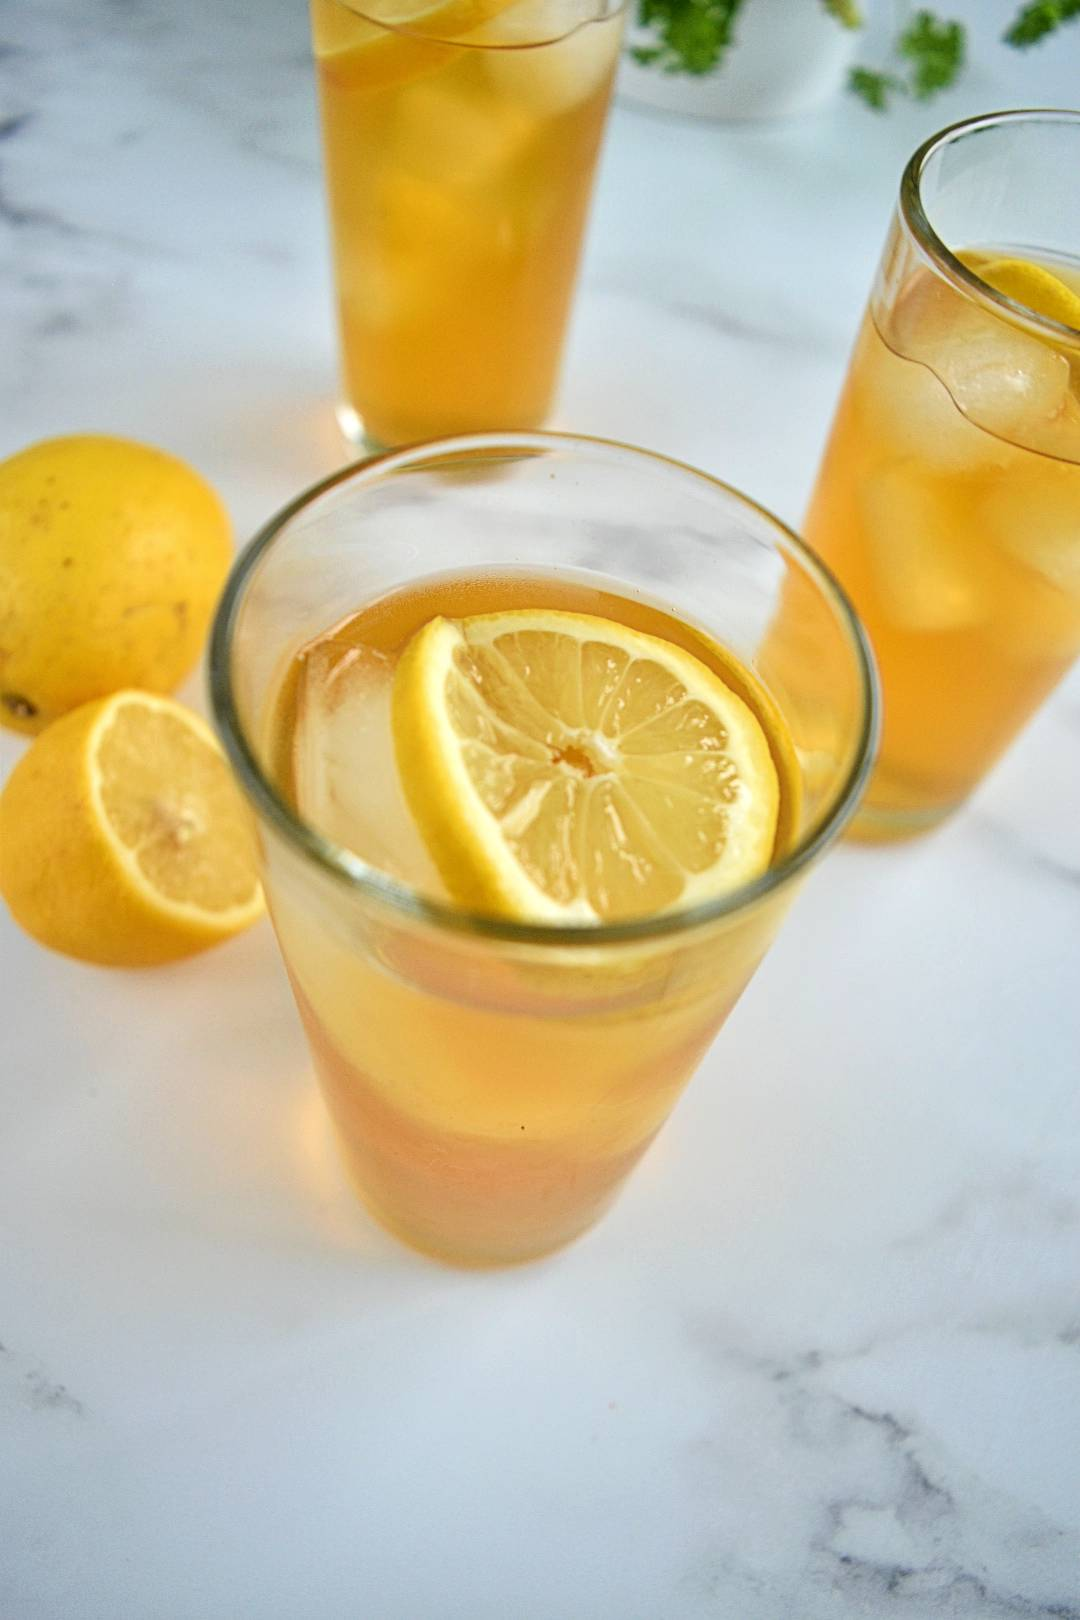 Rooibos iced tea in glasses with ice cubes and lemon slices.